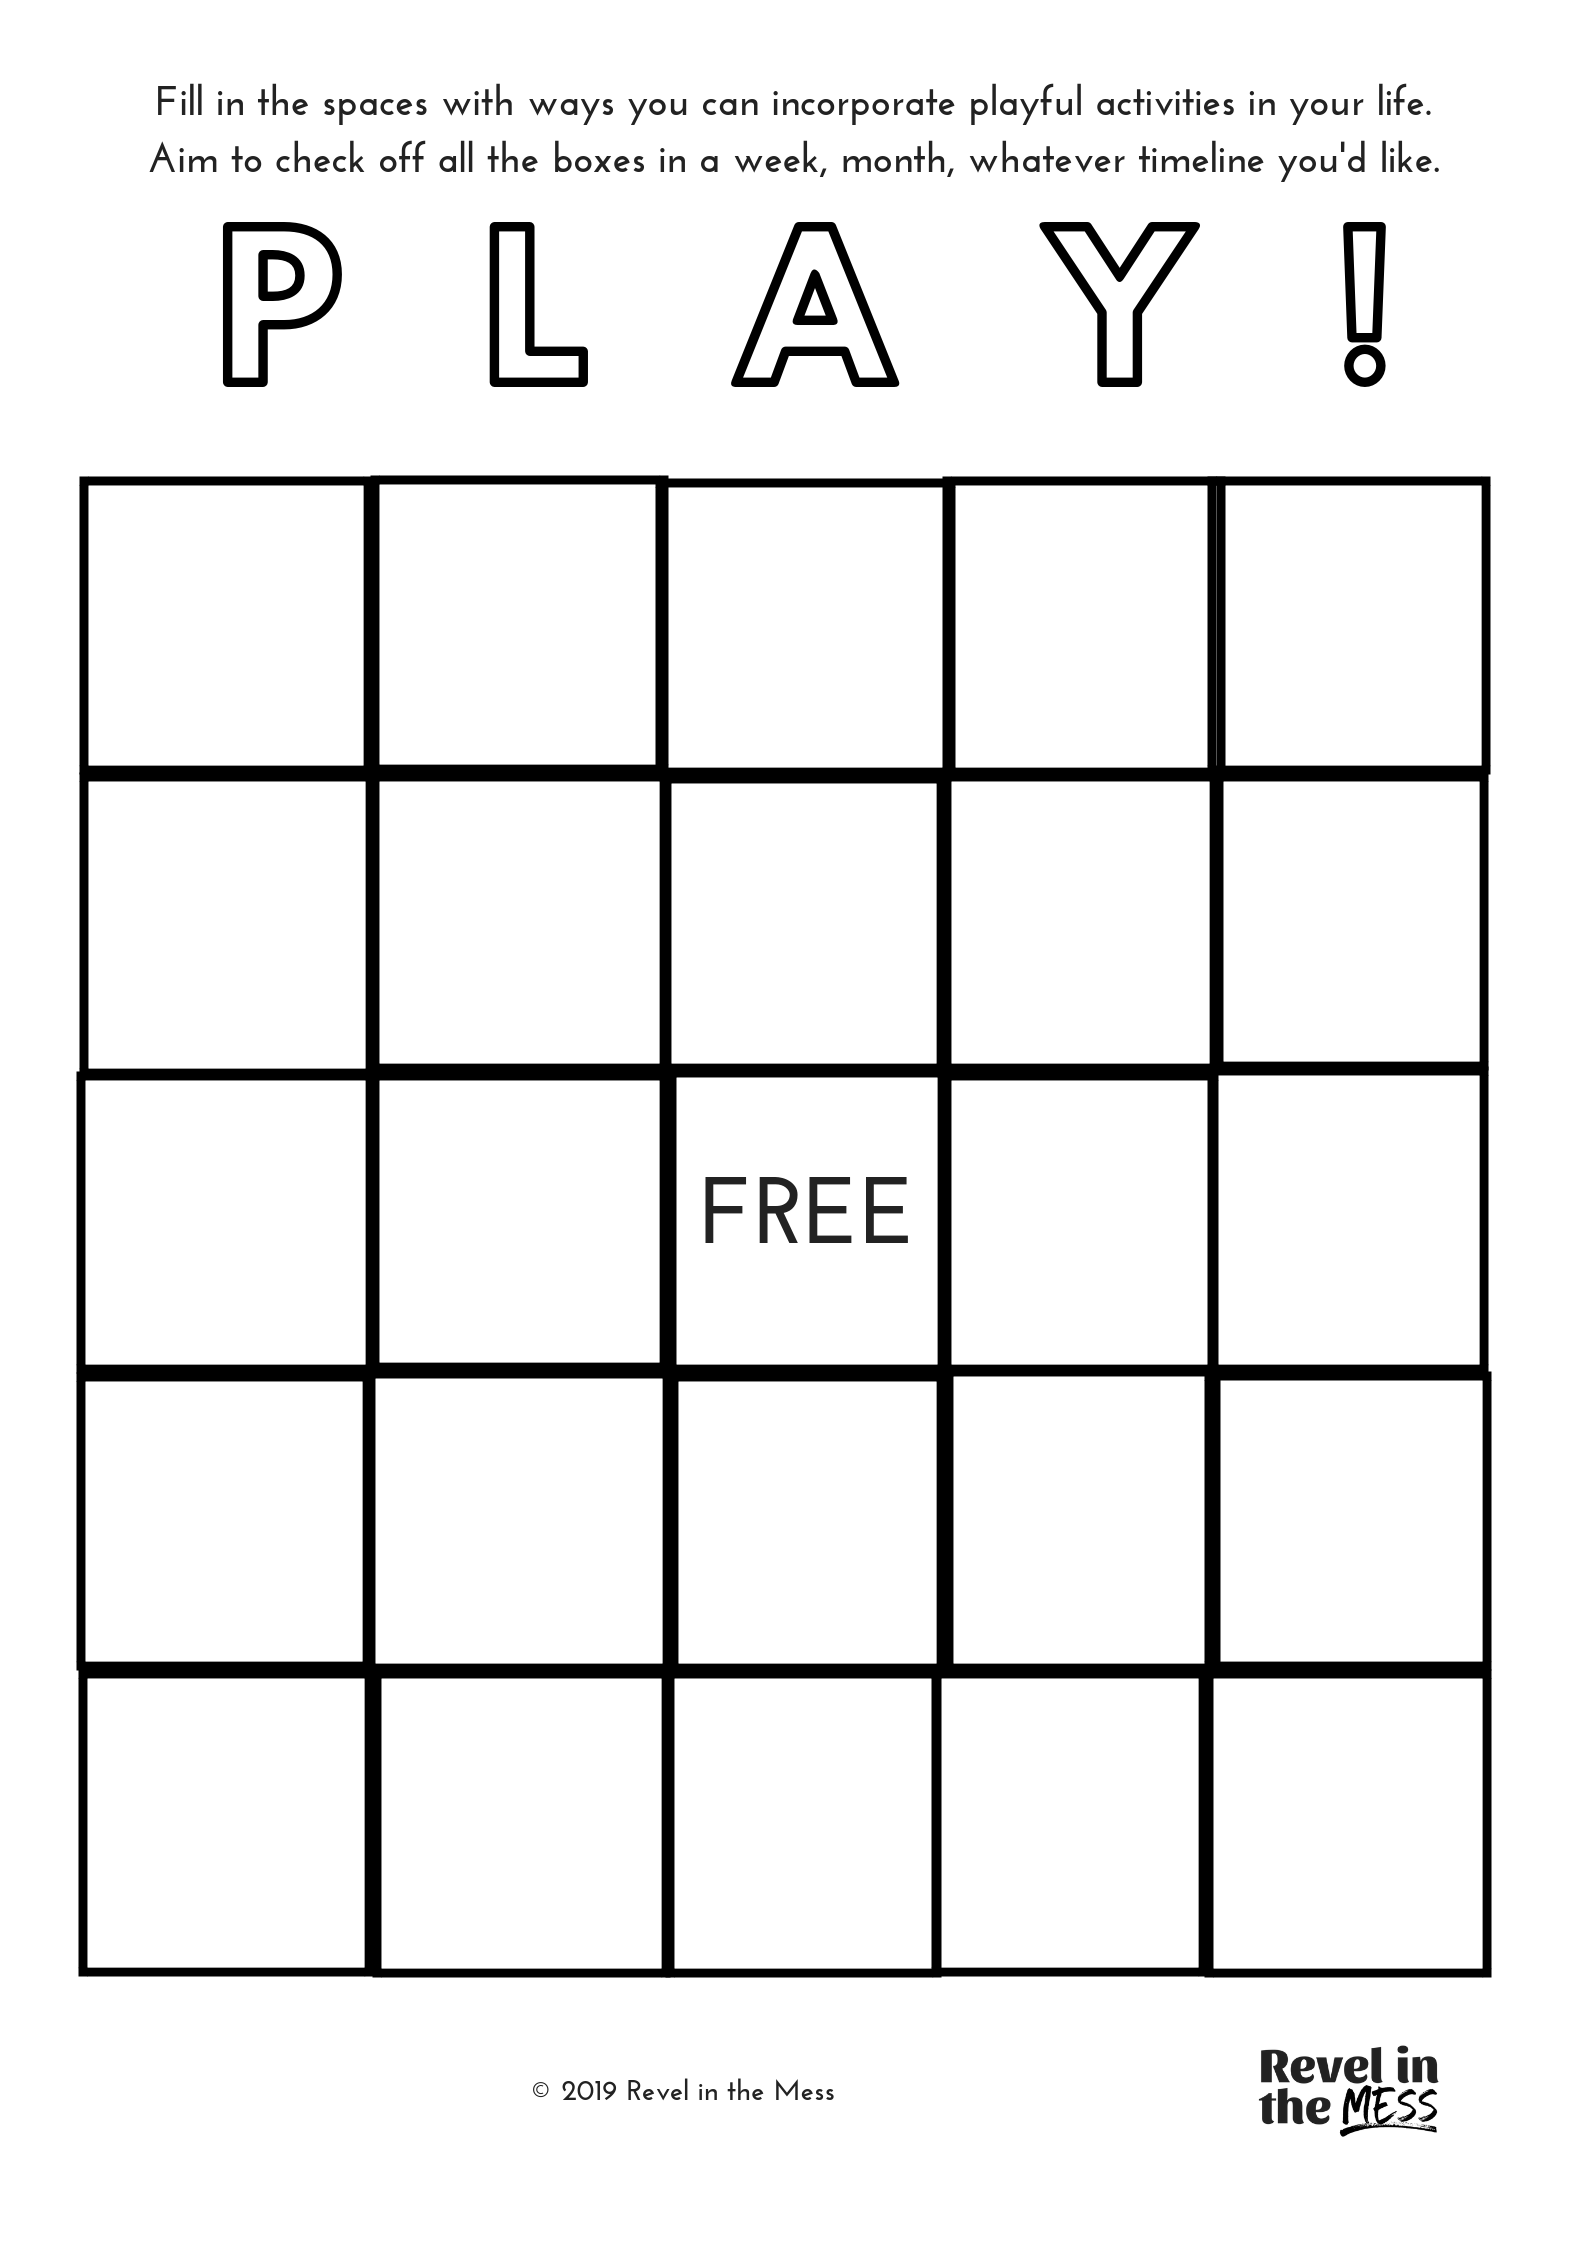 make your project or business a hotbed of play again play bingo card activity creativity tip.png